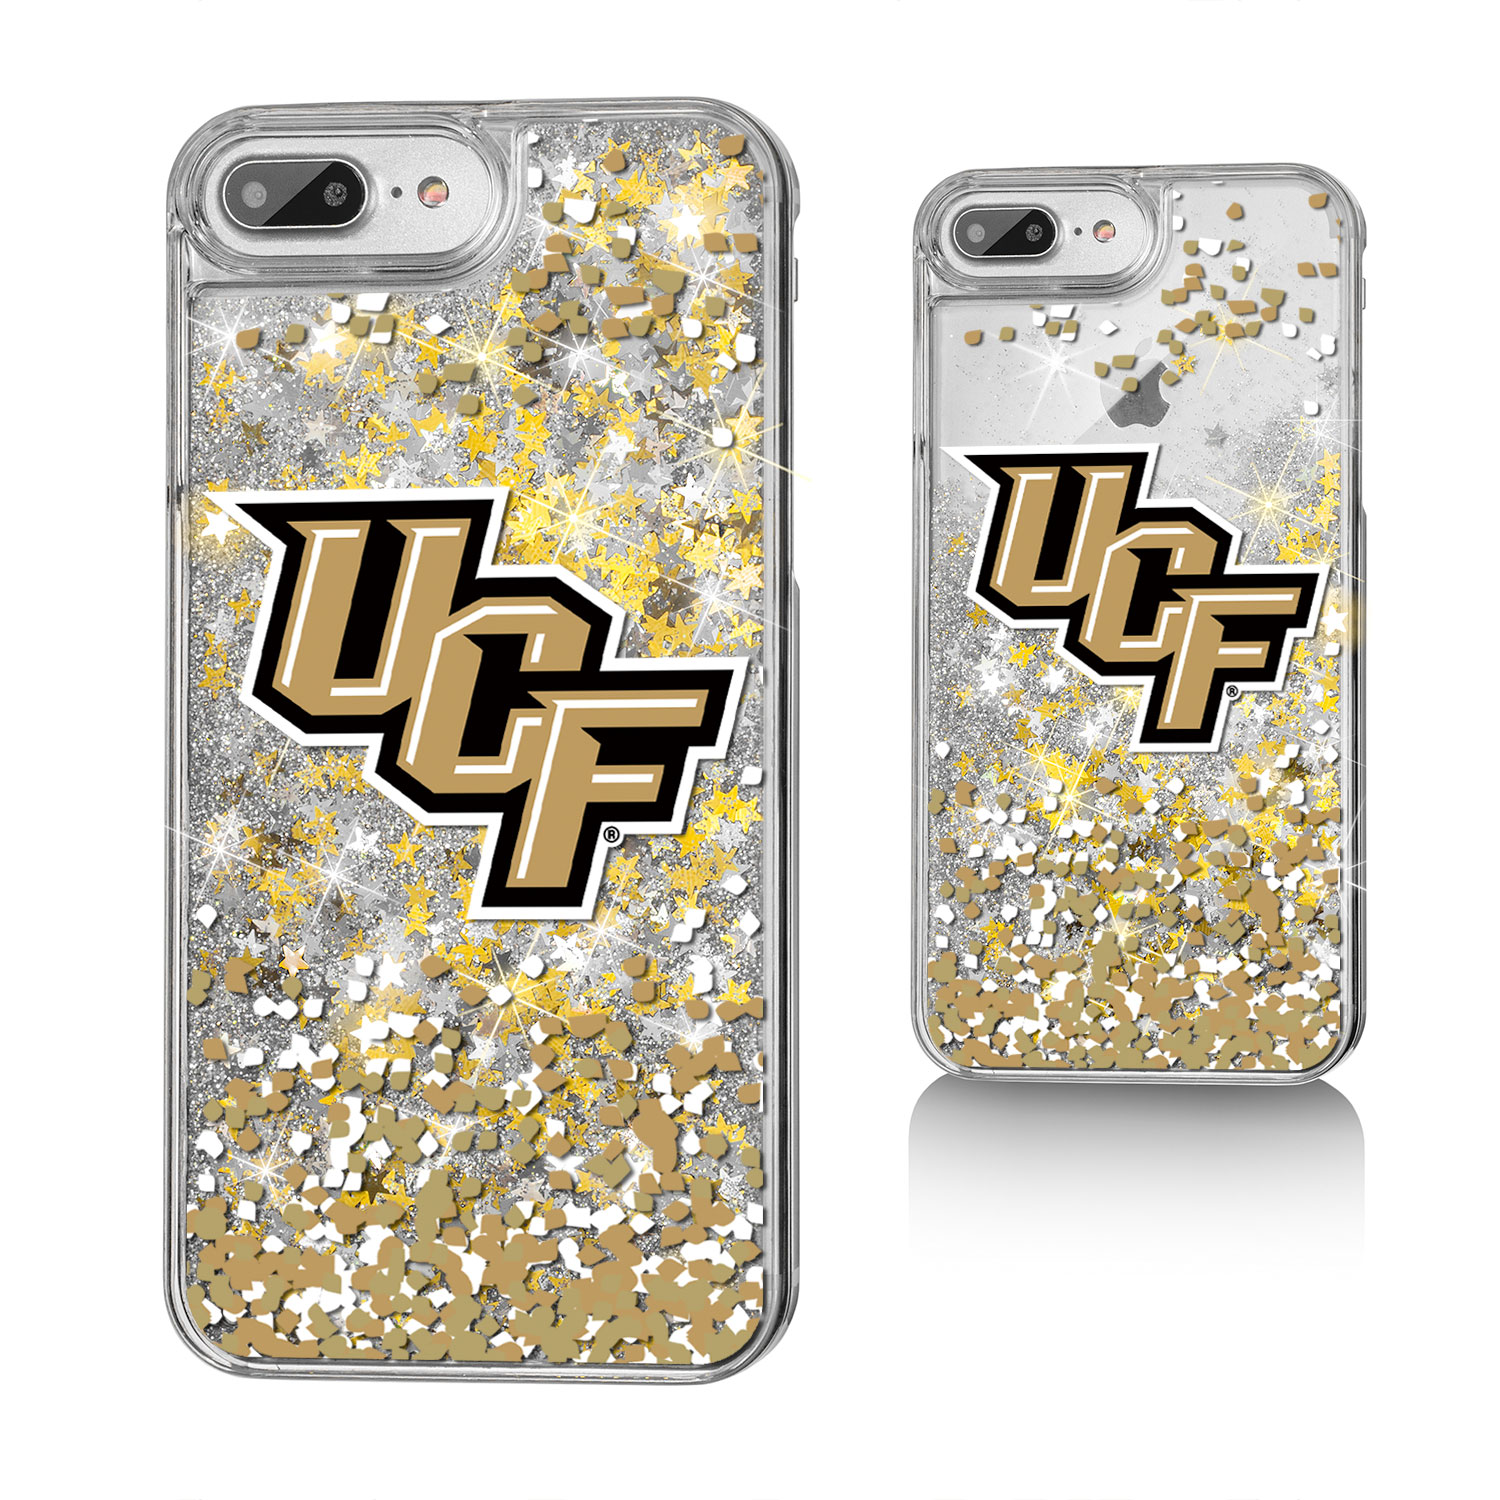 UCF Central Florida Golden Knights Confetti Glitter Case for iPhone 8 Plus / 7 Plus / 6 Plus